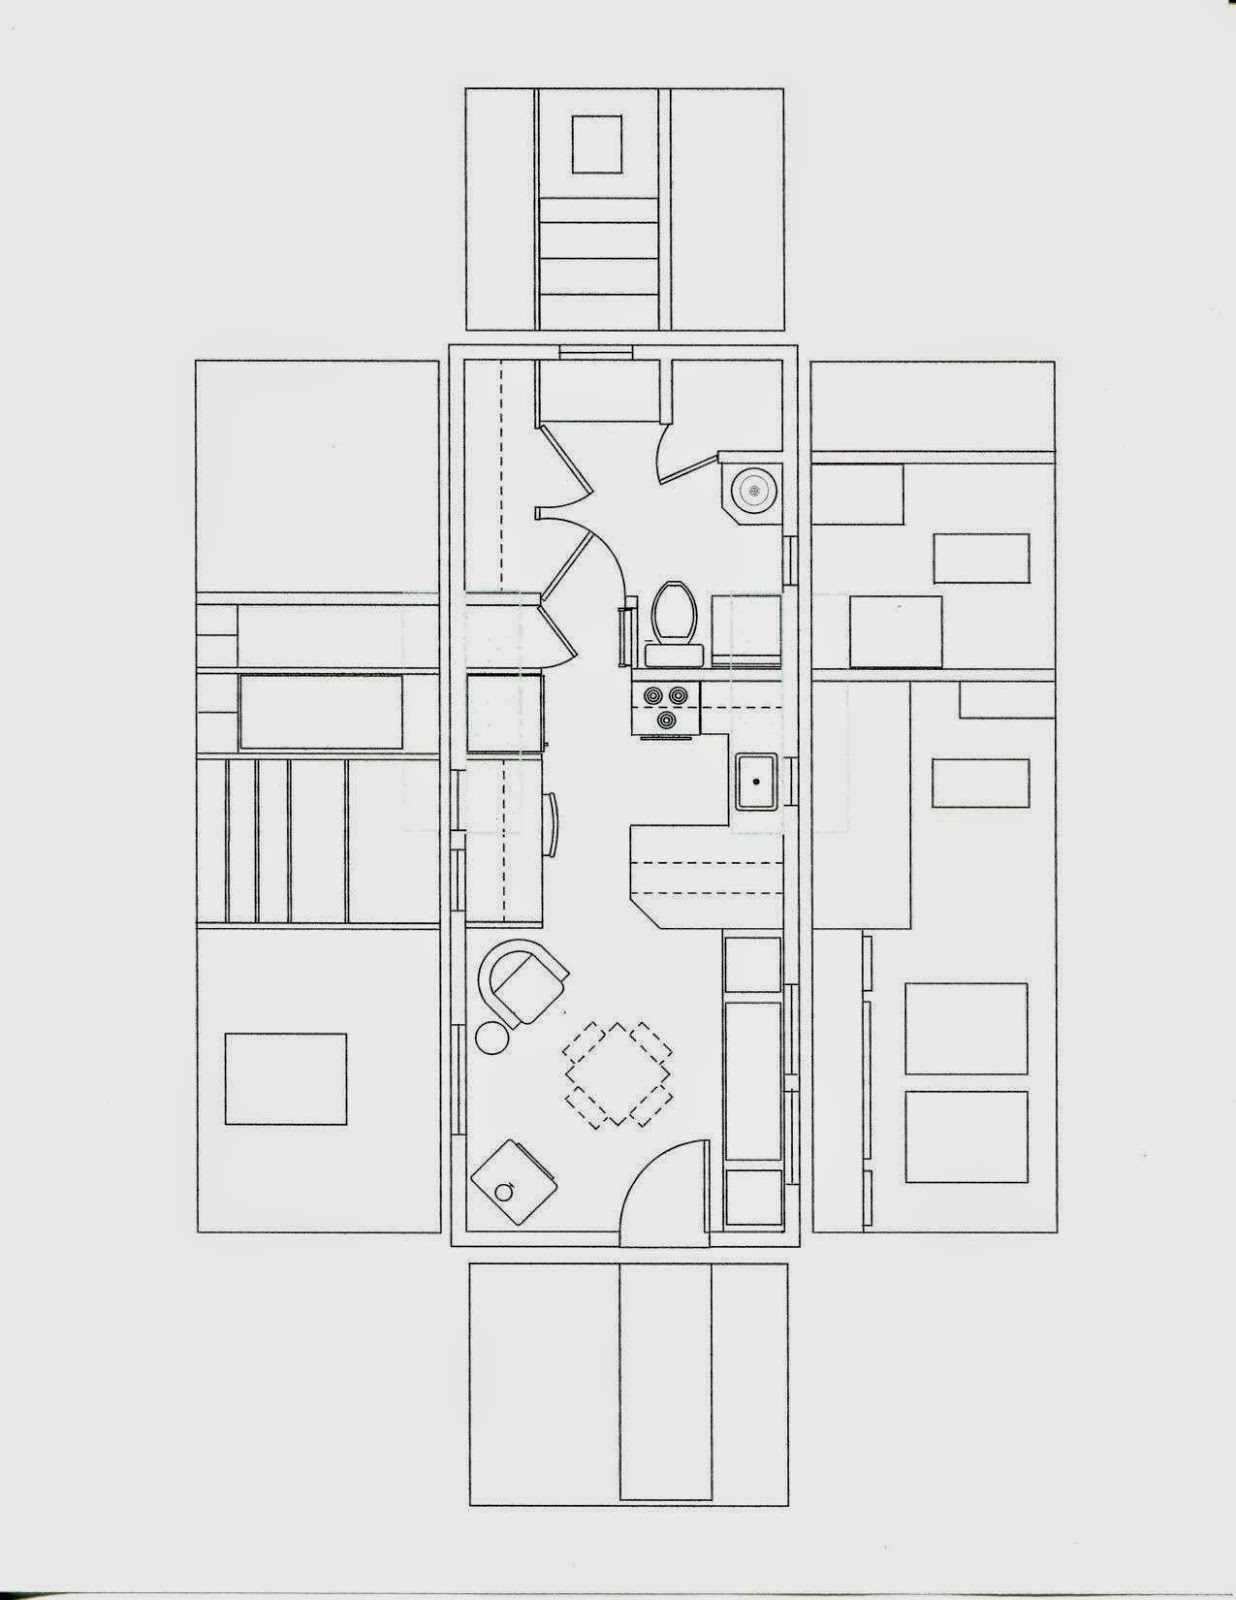 Todd S Tiny Home The Floor Plan